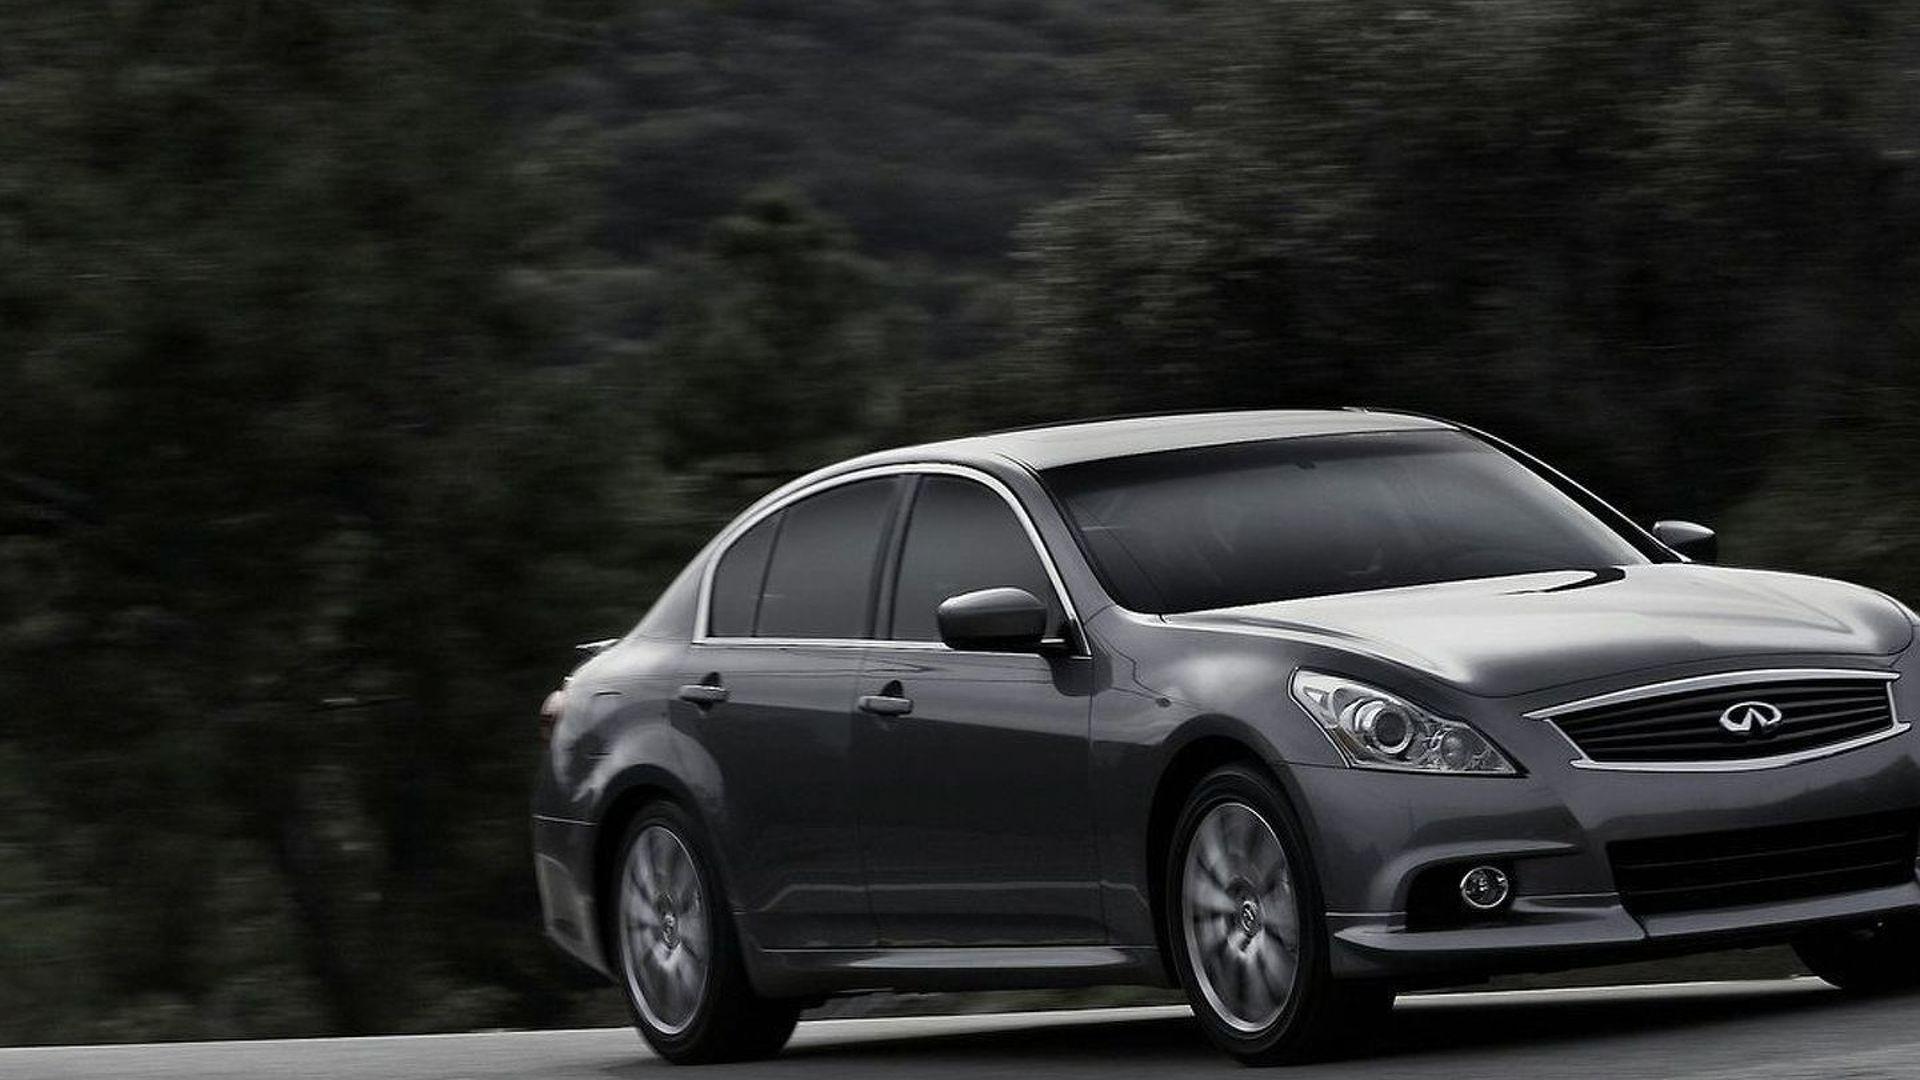 used cary usautomobile infiniti in cars nc ad sale infinity for